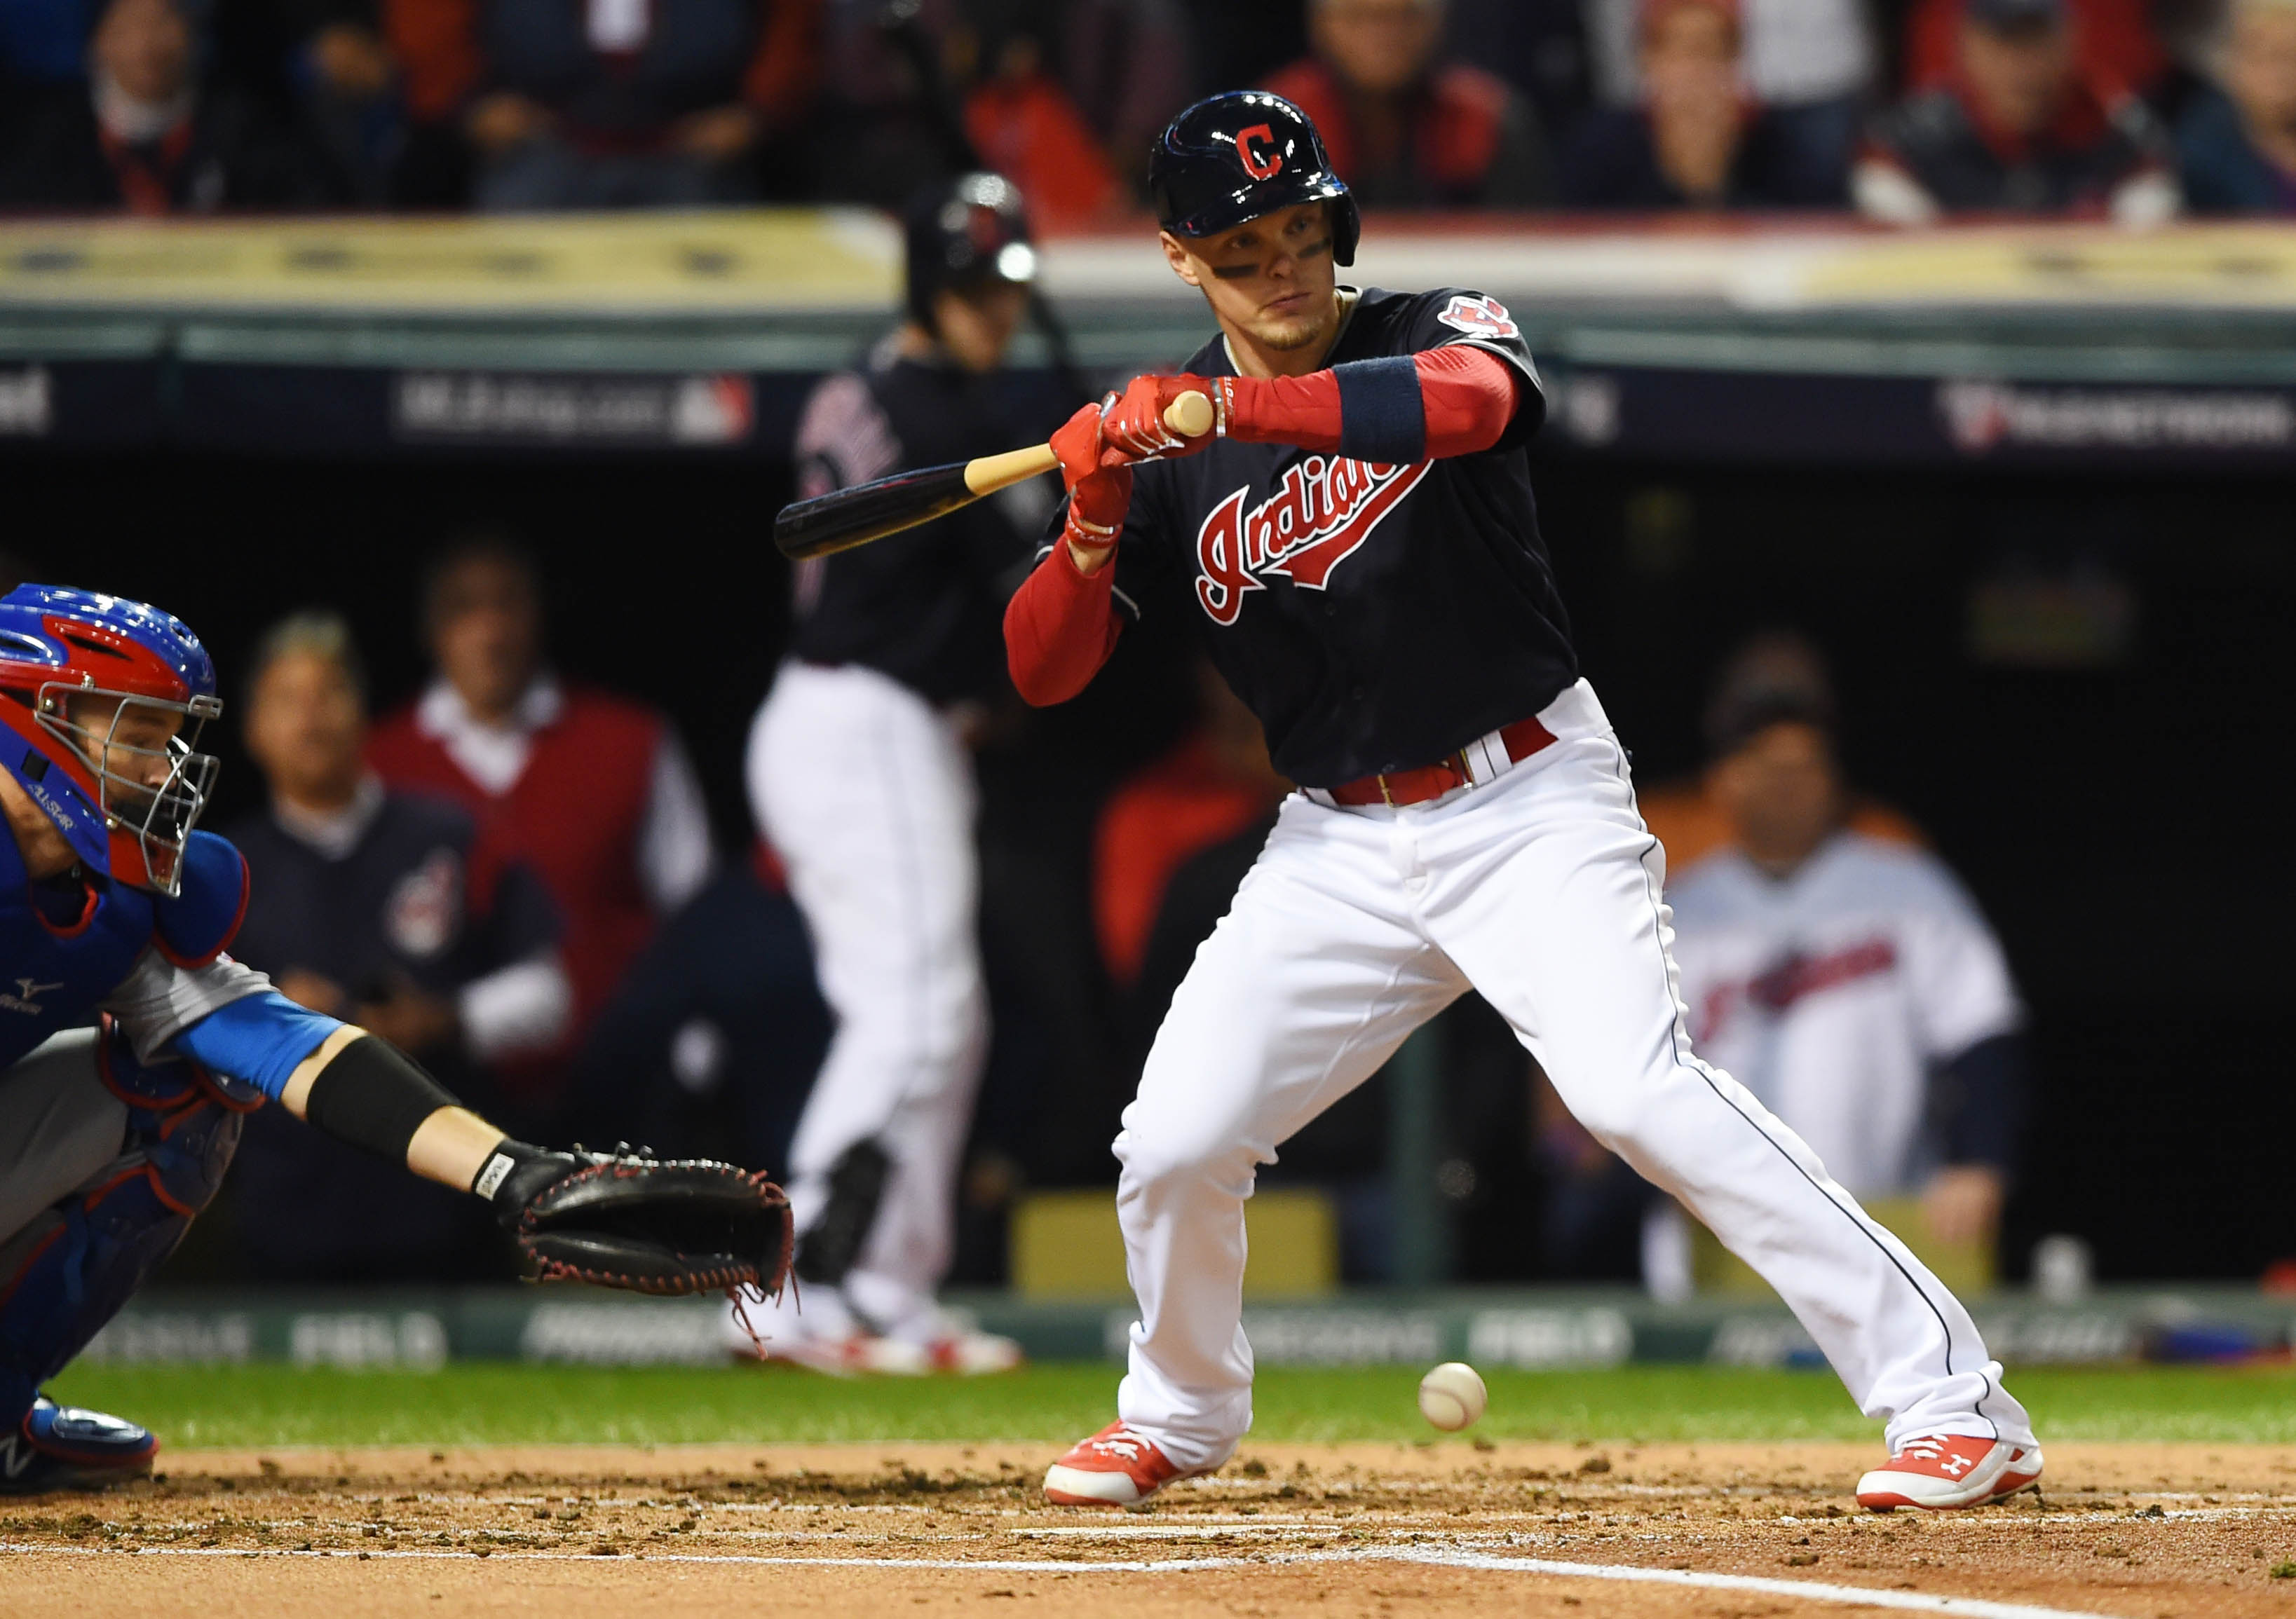 9632654-mlb-world-series-chicago-cubs-at-cleveland-indians-1